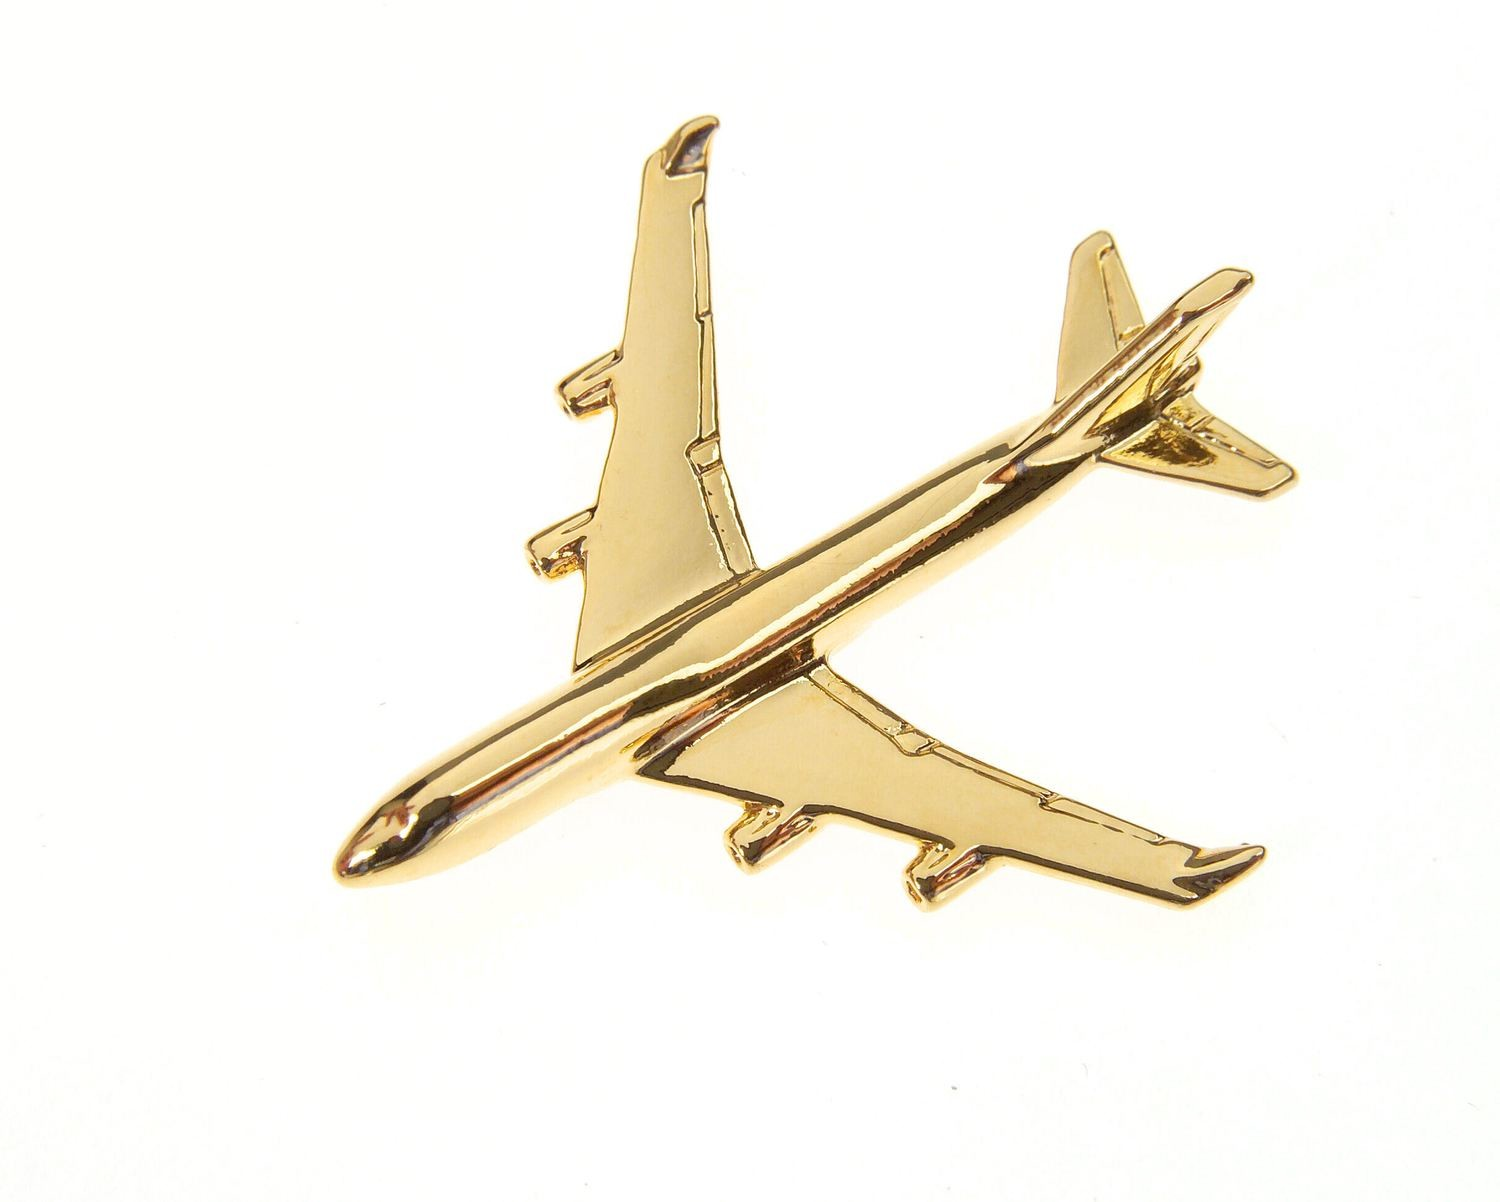 Boeing 747-400 Gold Plated Tie / Lapel Pin